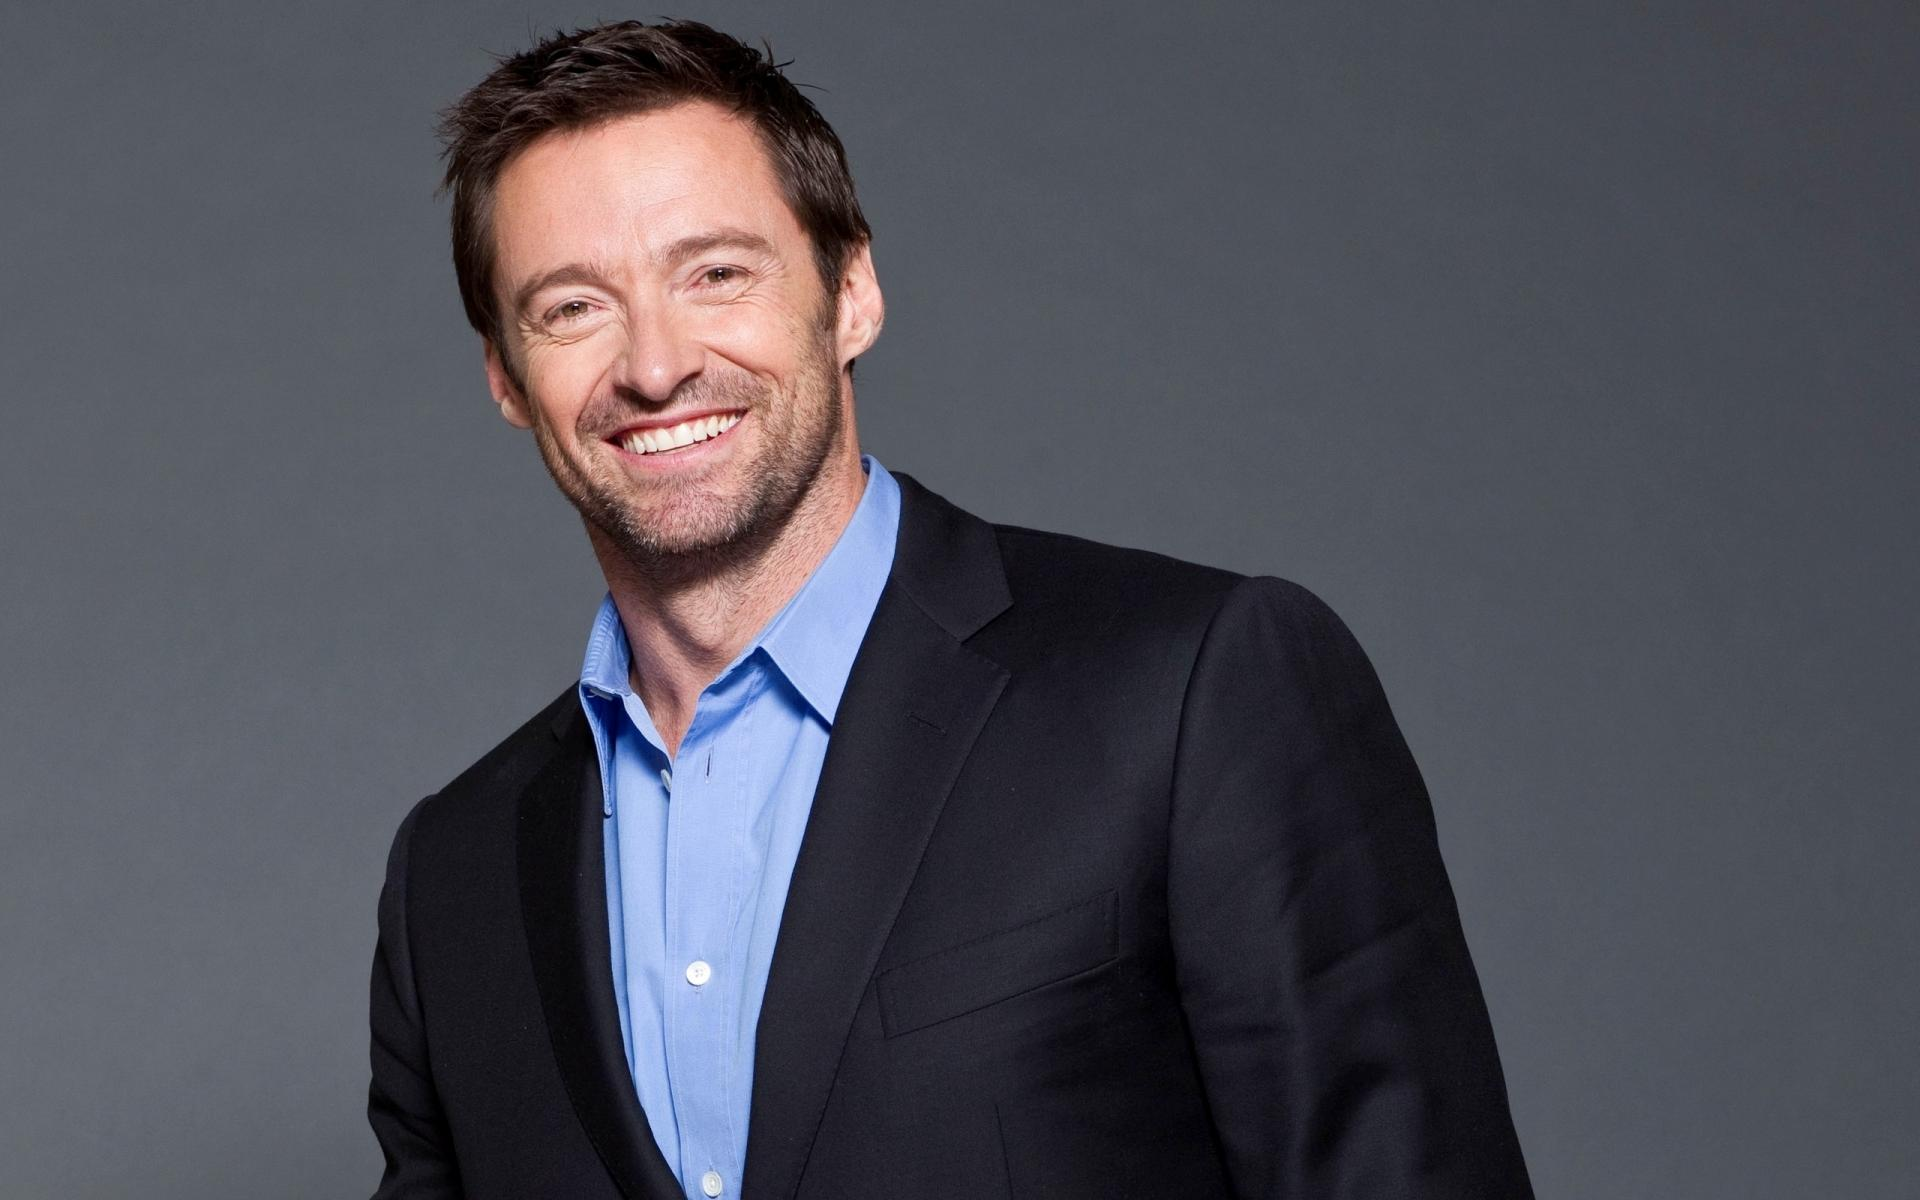 ... Hugh-Jackman-hd-wallpapers-4 ...